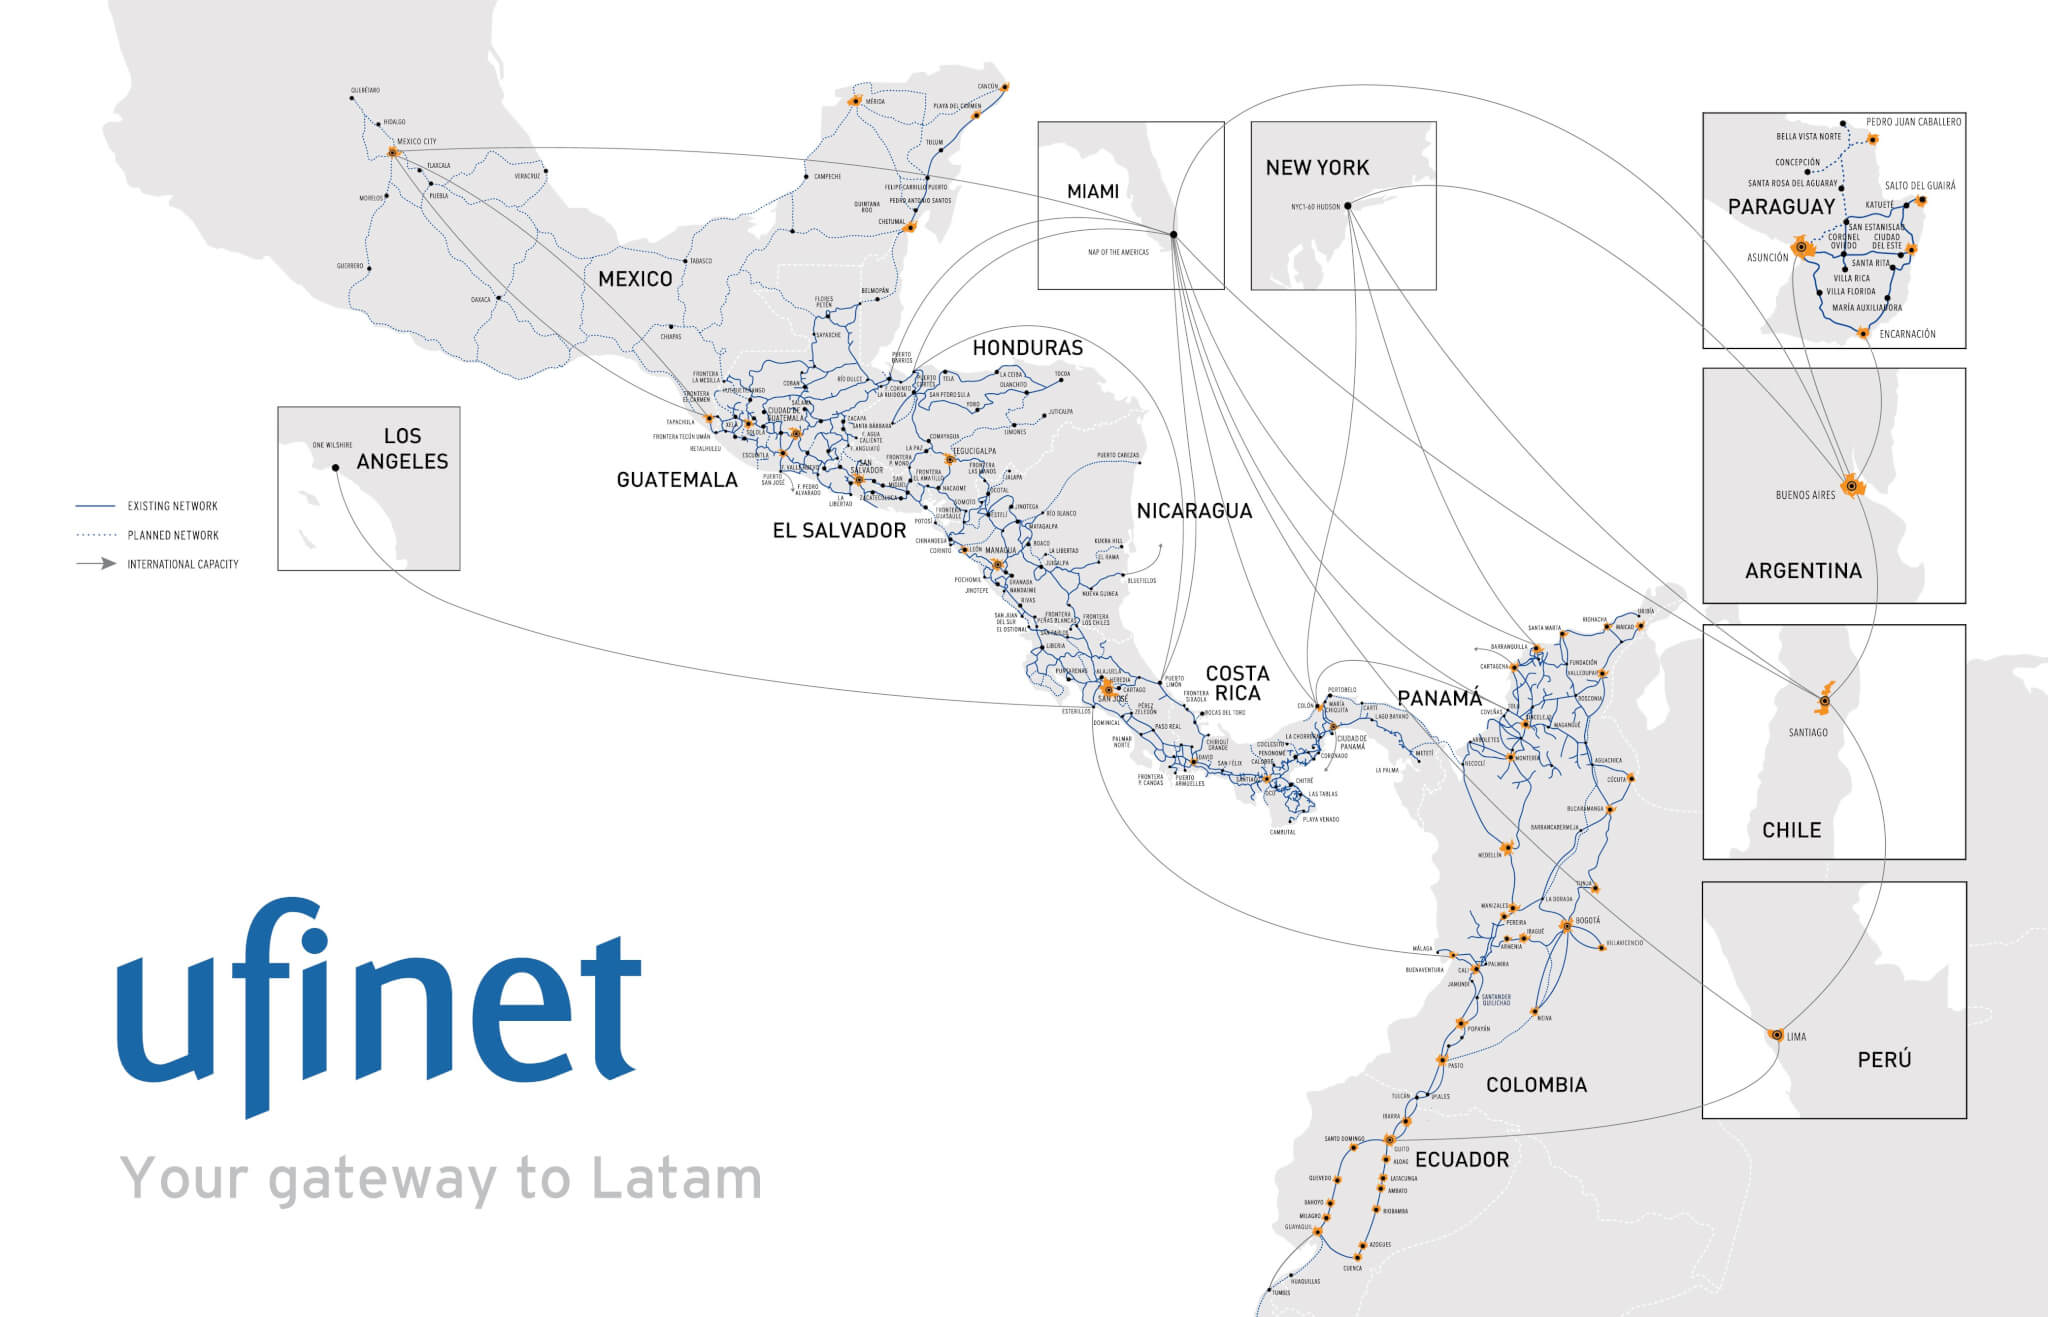 Our fiber optic network - Ufinet on